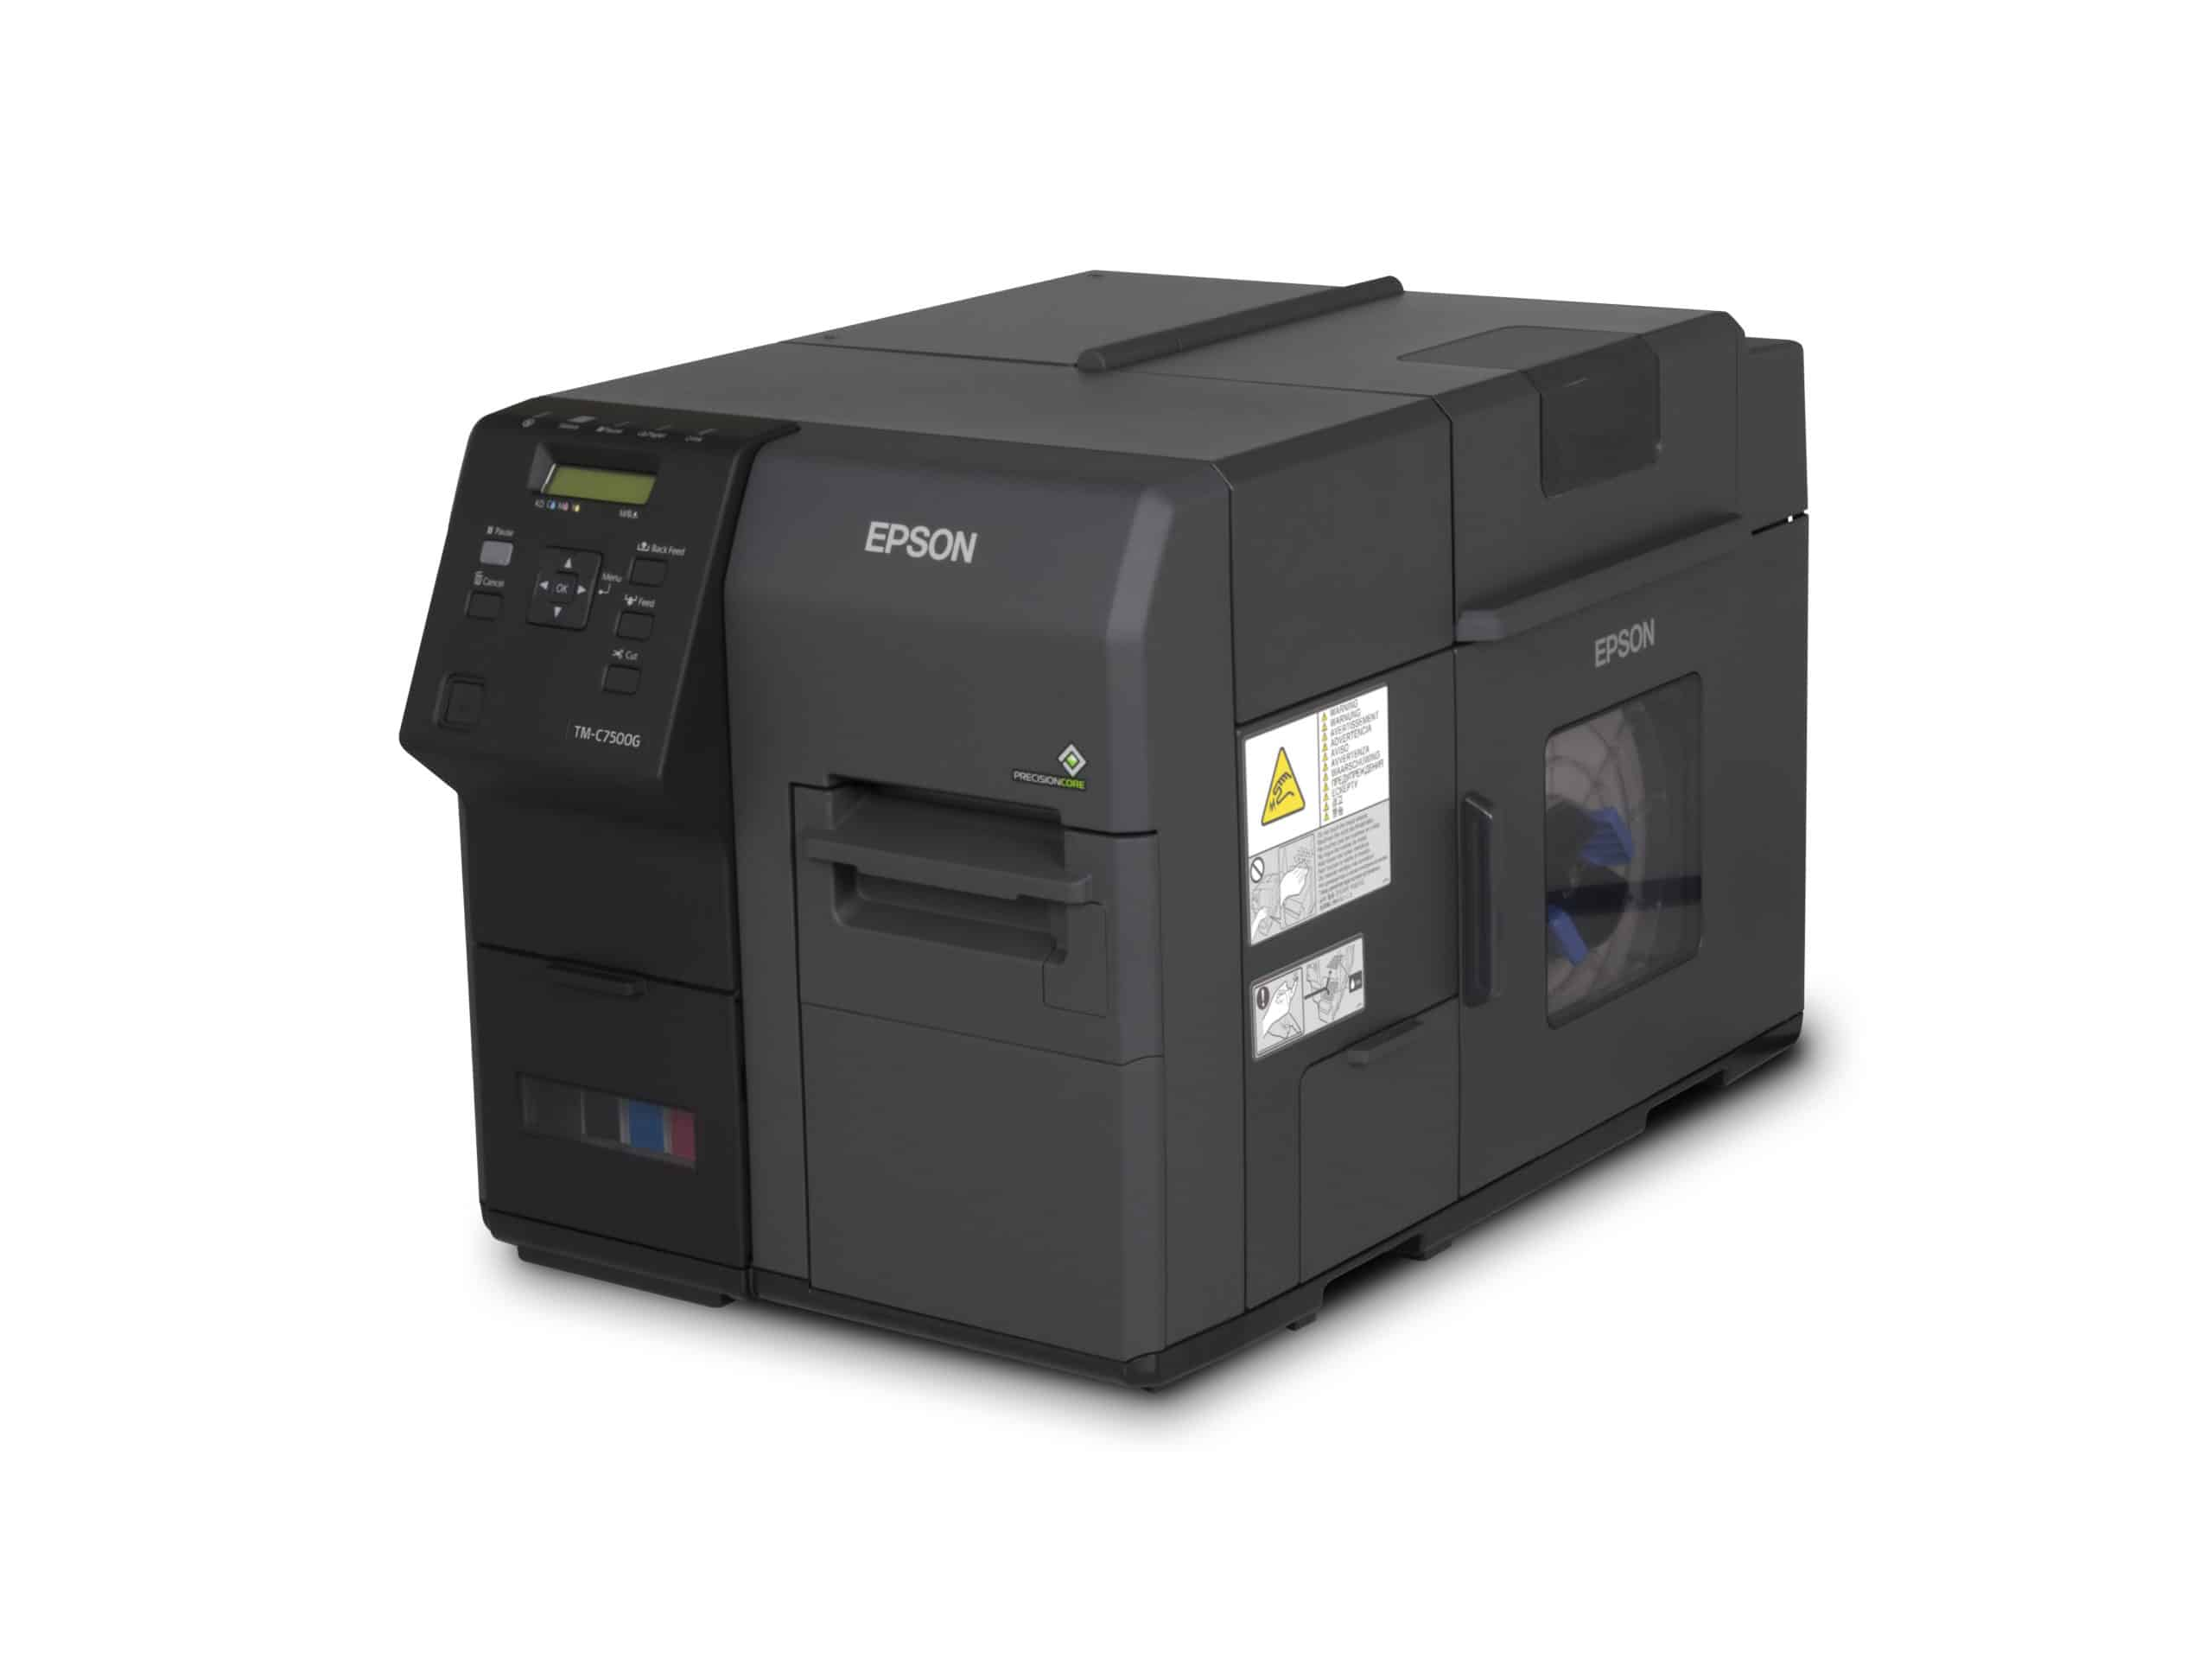 Shop Epson C7500 ColorWorks Color Label Printer at LabelBasic